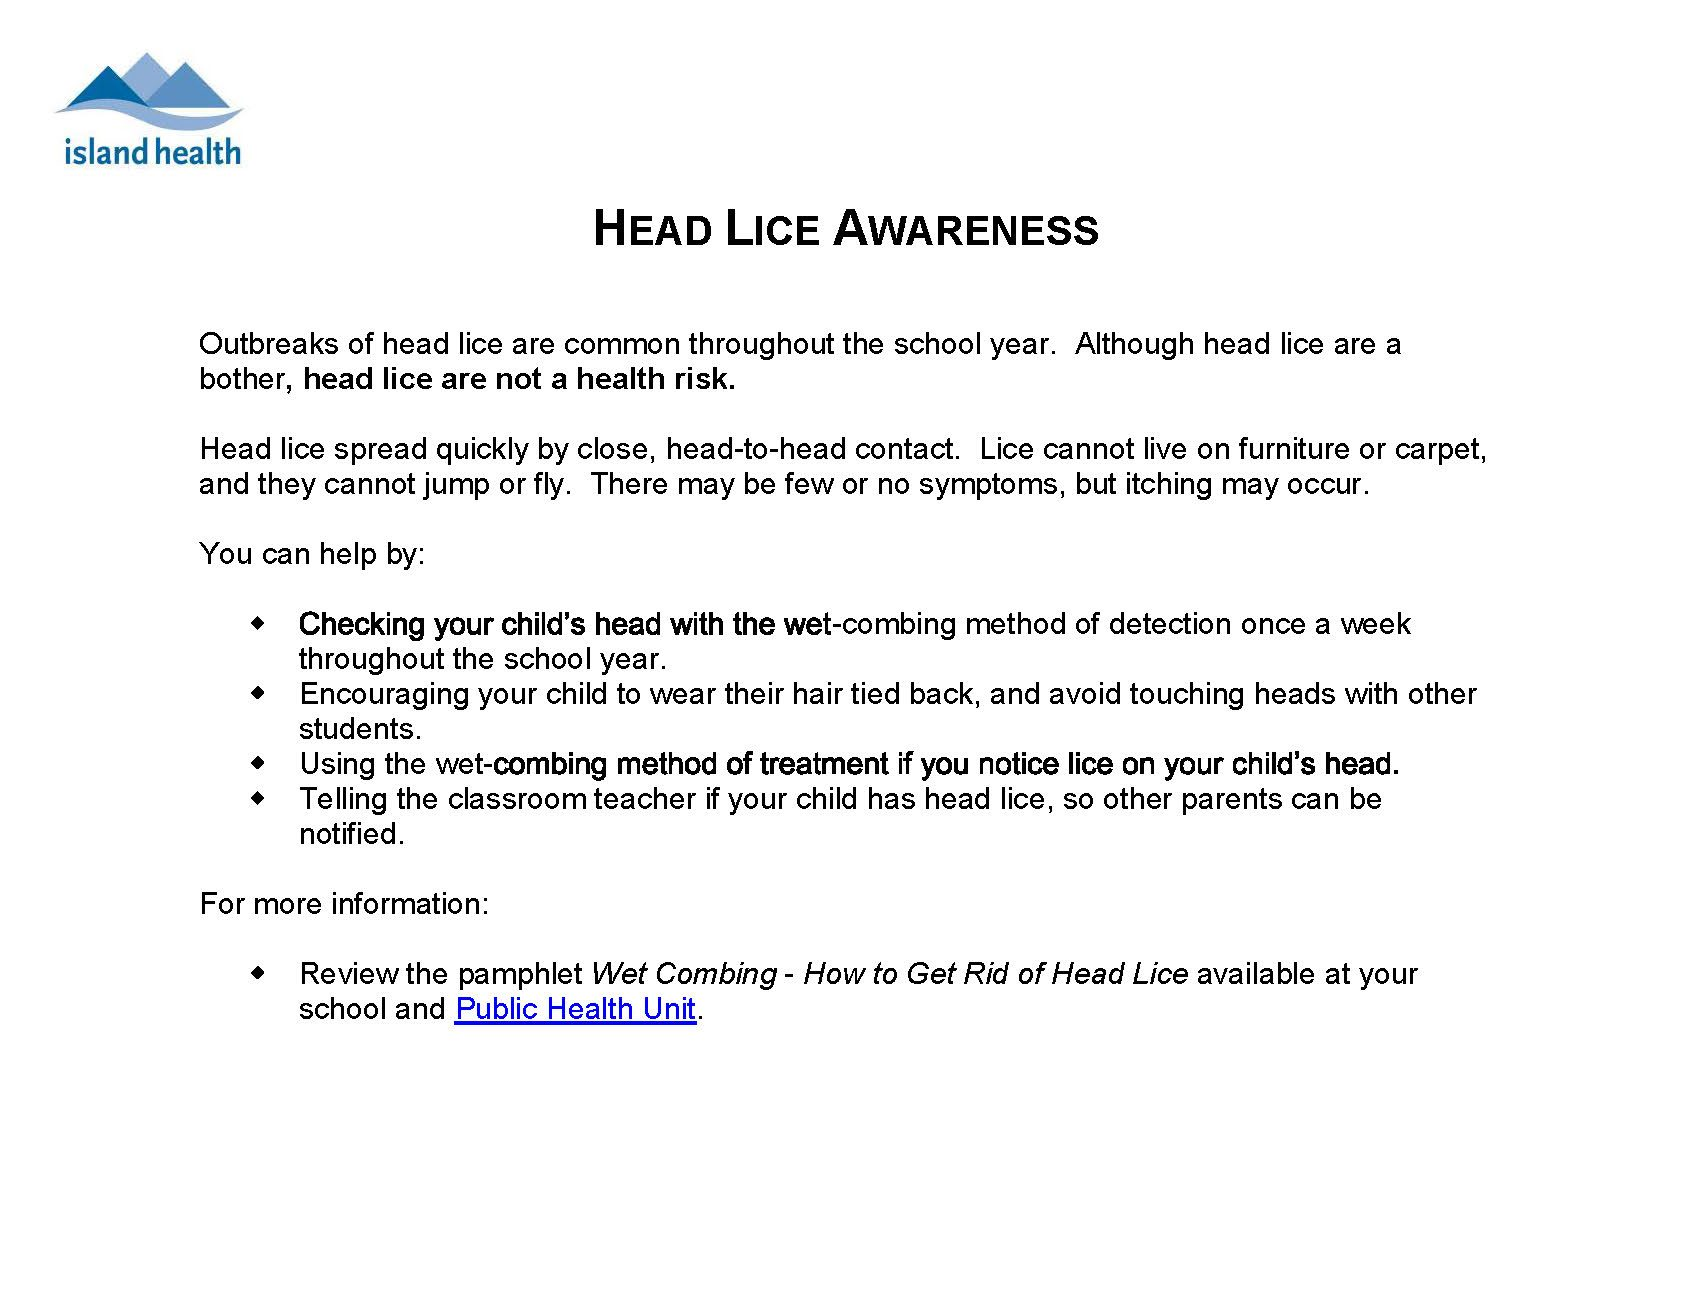 lice information